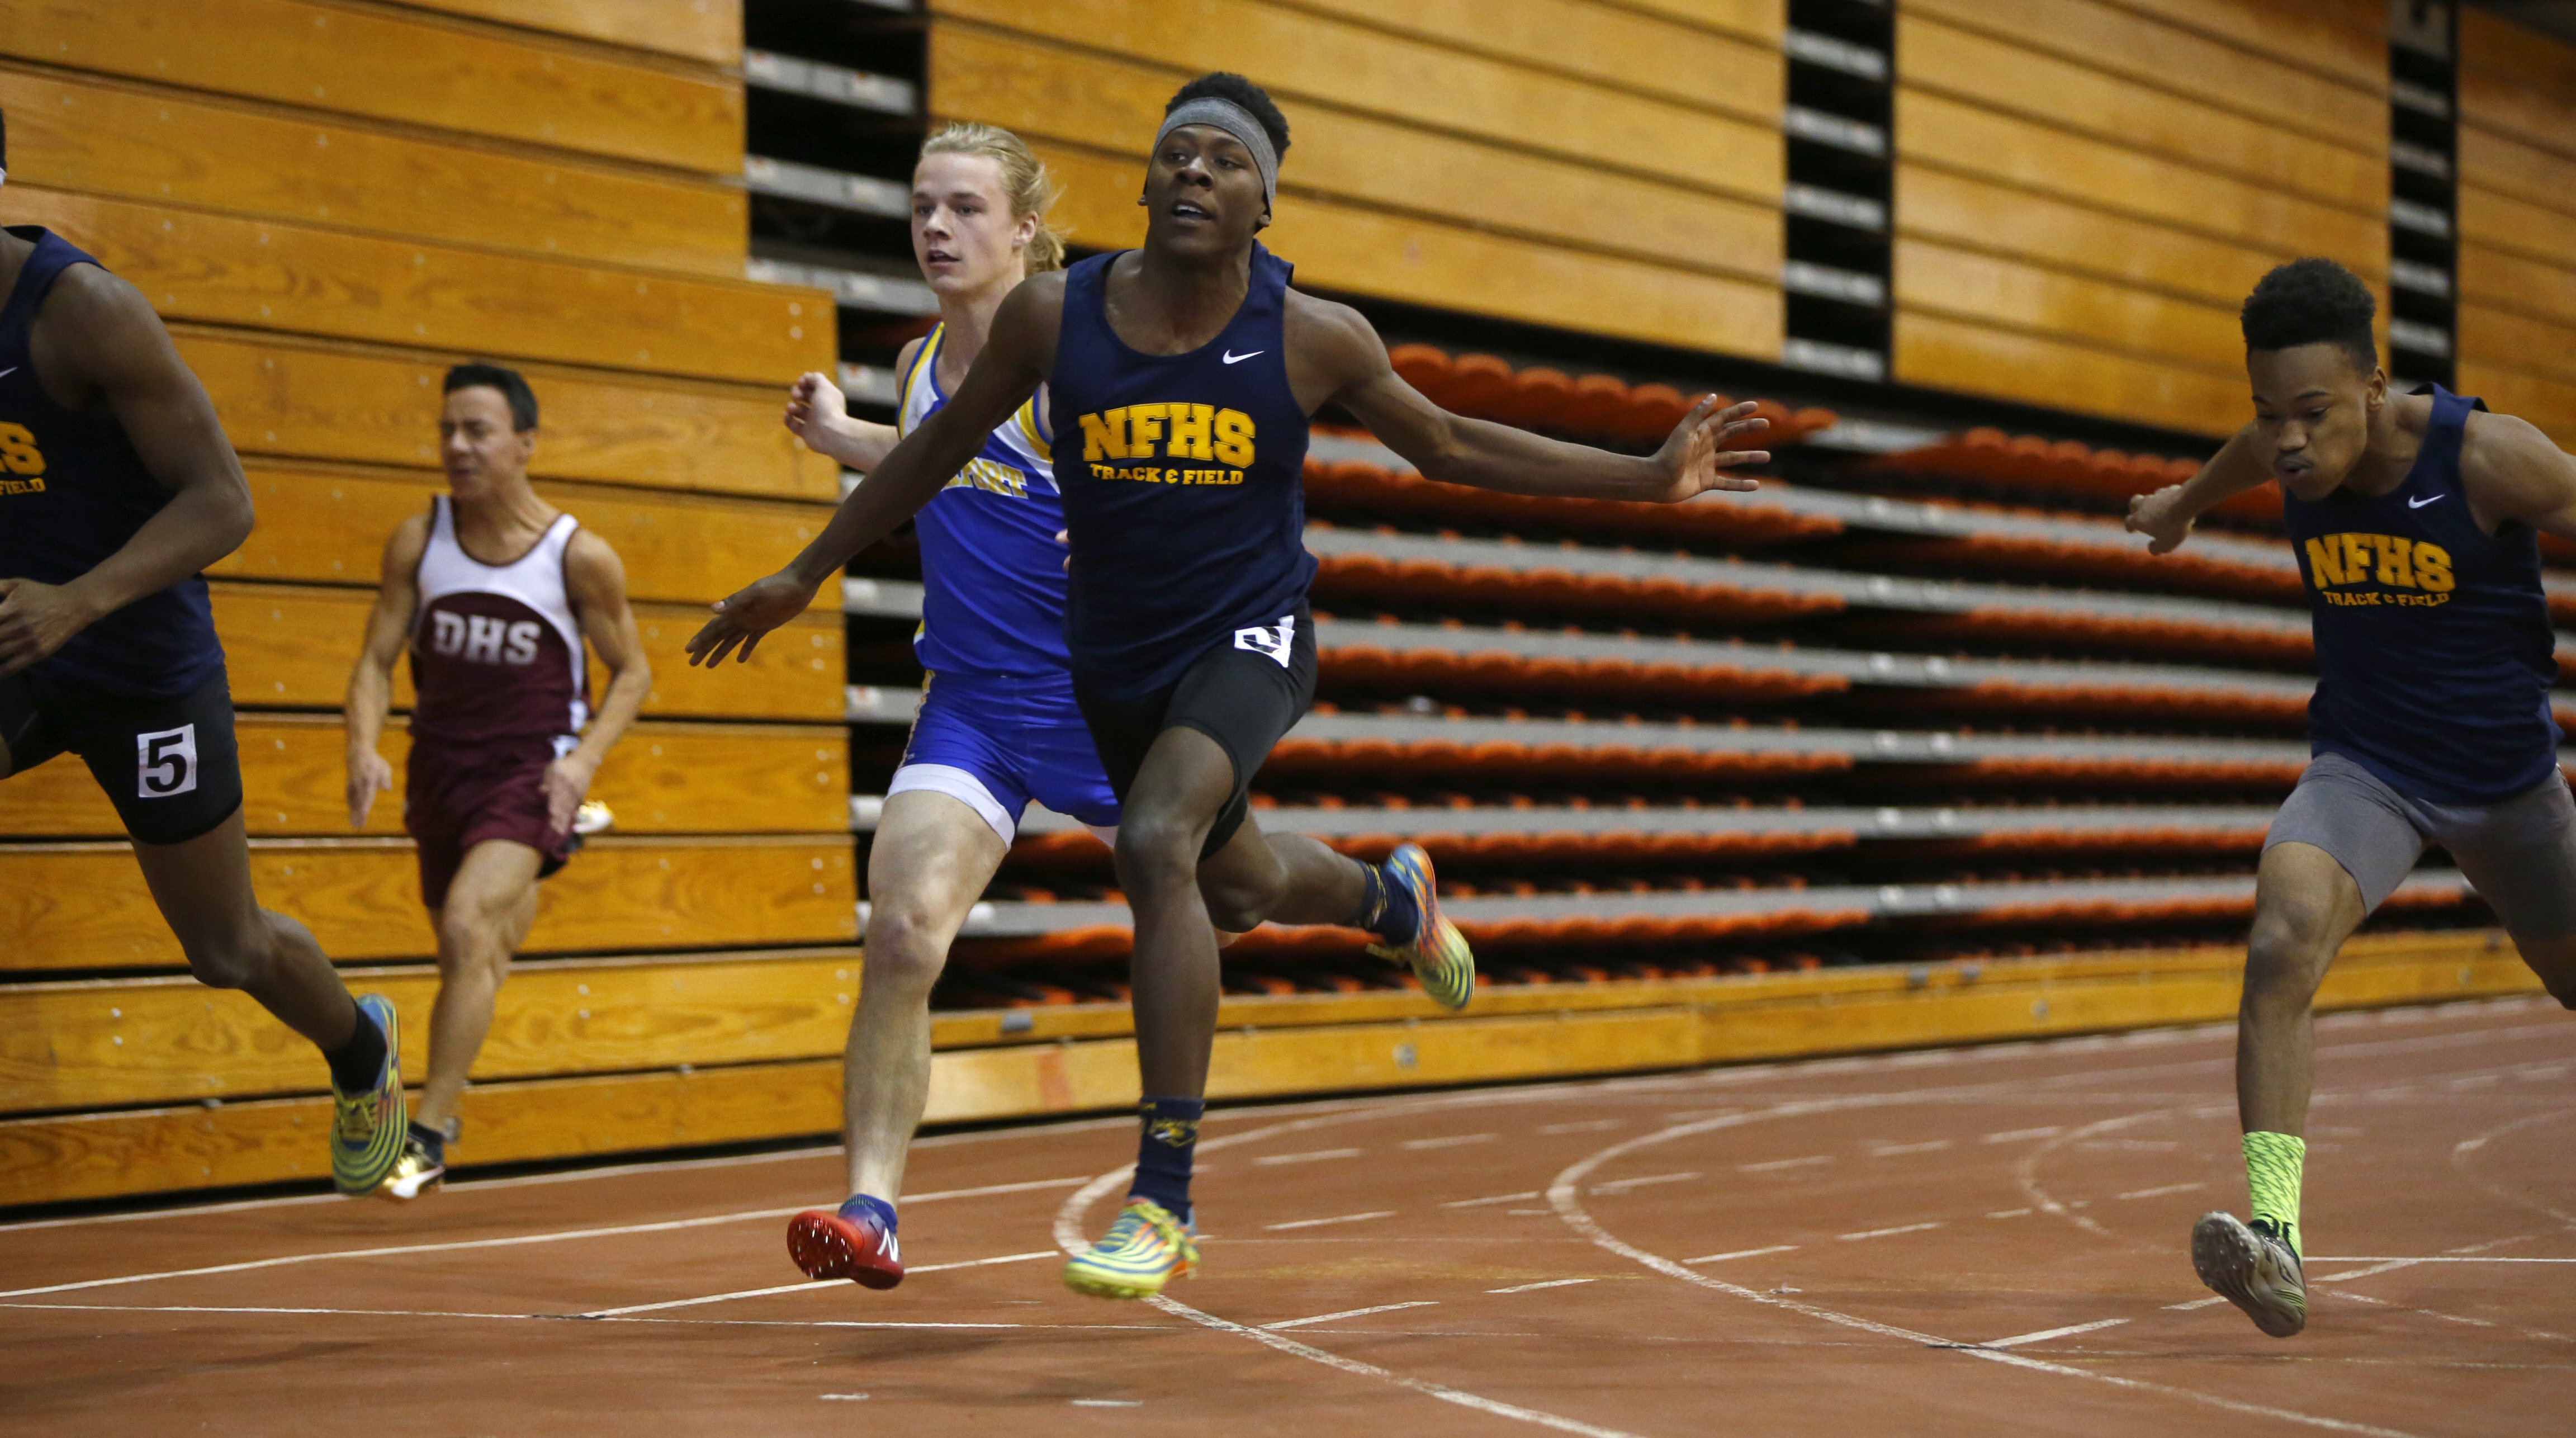 Rodney Barnes of Niagara Falls wins the 55-meter dash during a track meet at Buffalo State on Jan. 7. (Harry Scull Jr./Buffalo News)